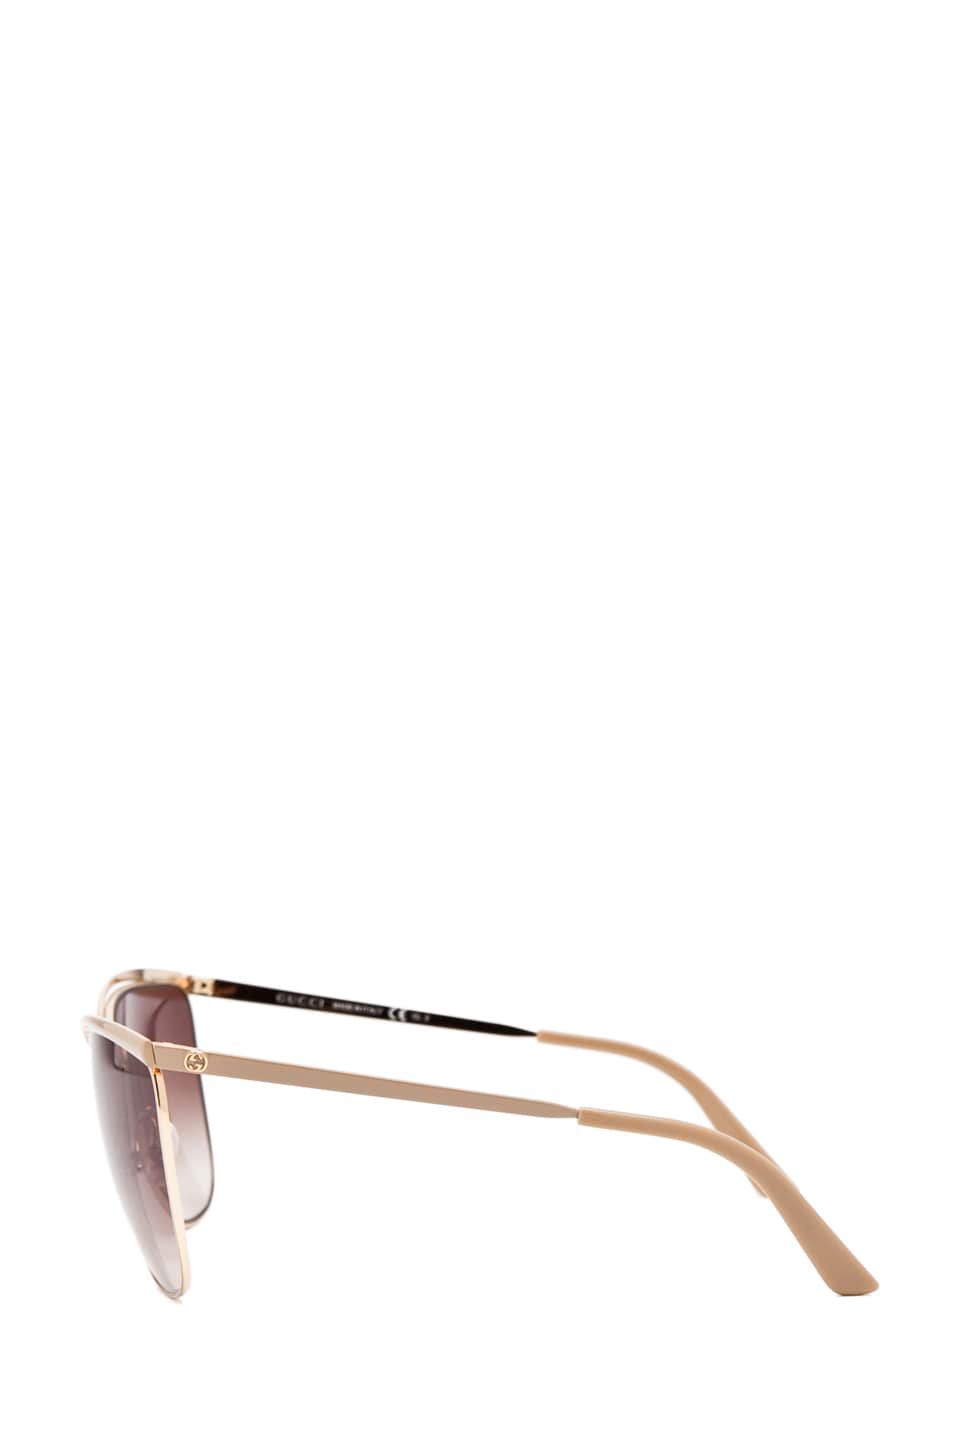 Image 3 of Gucci 2891/S in Caramel Rose Gold with Gray Gradient Lens